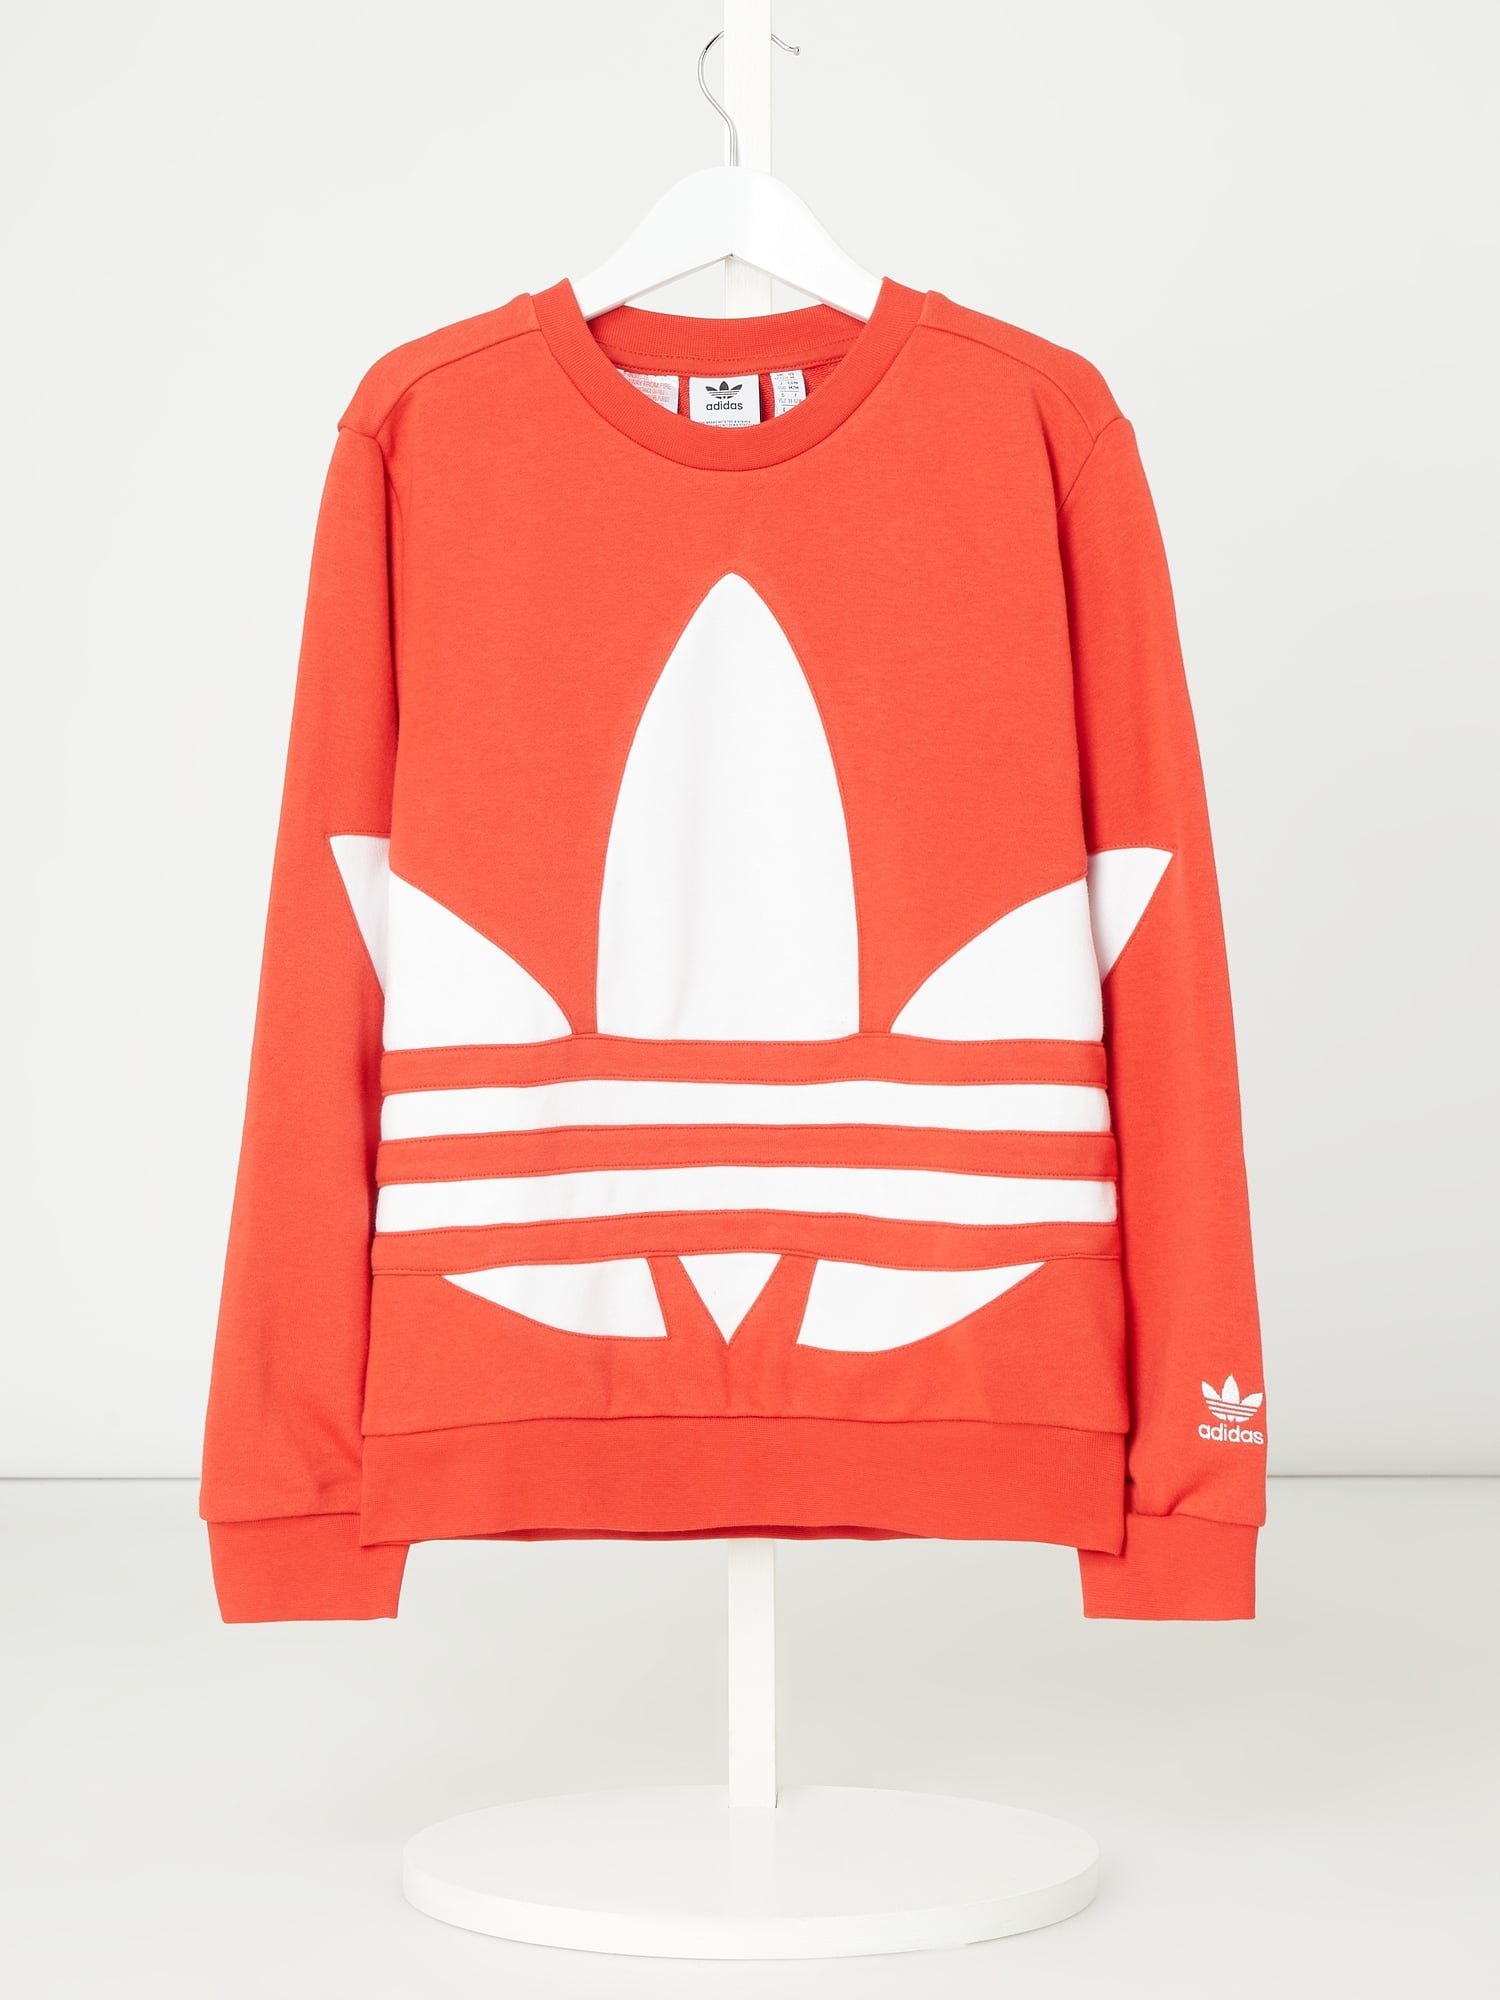 ADIDAS Sweatshirt mit recyceltem Polyester in Rot online